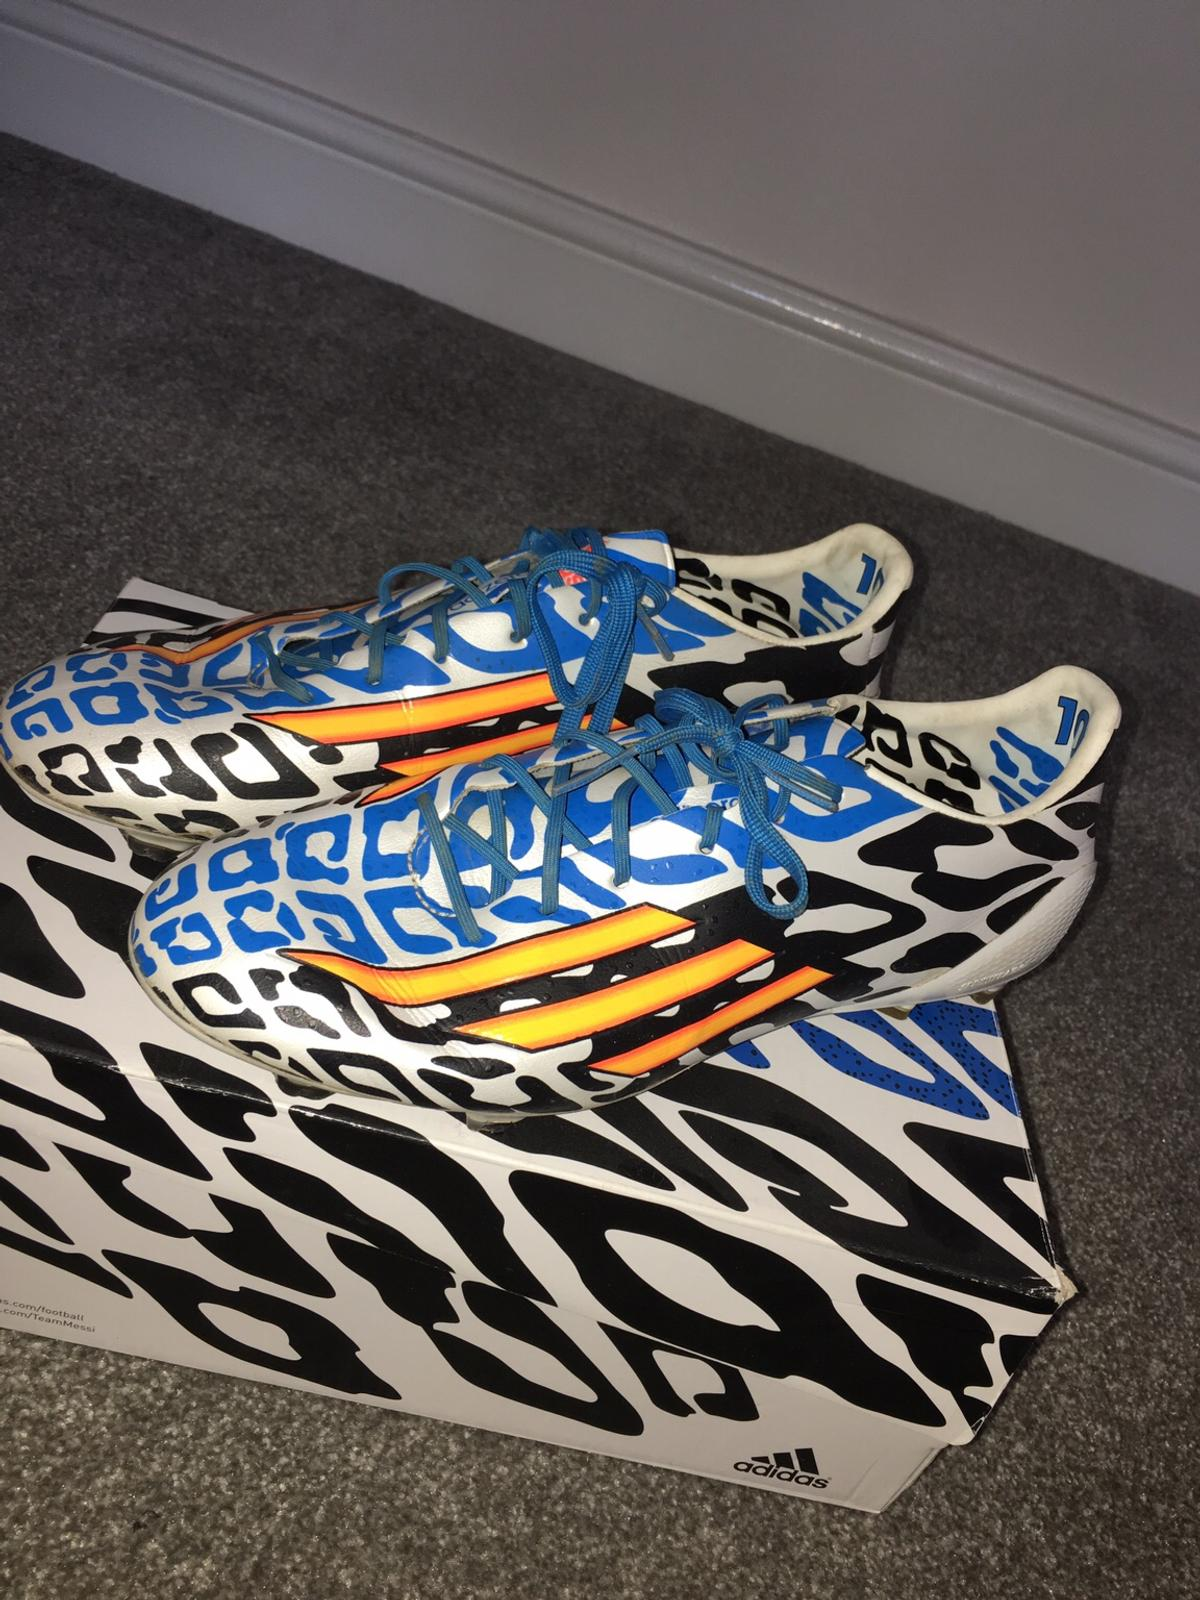 Adidas F50 adizero Messi World Cup size 9 12